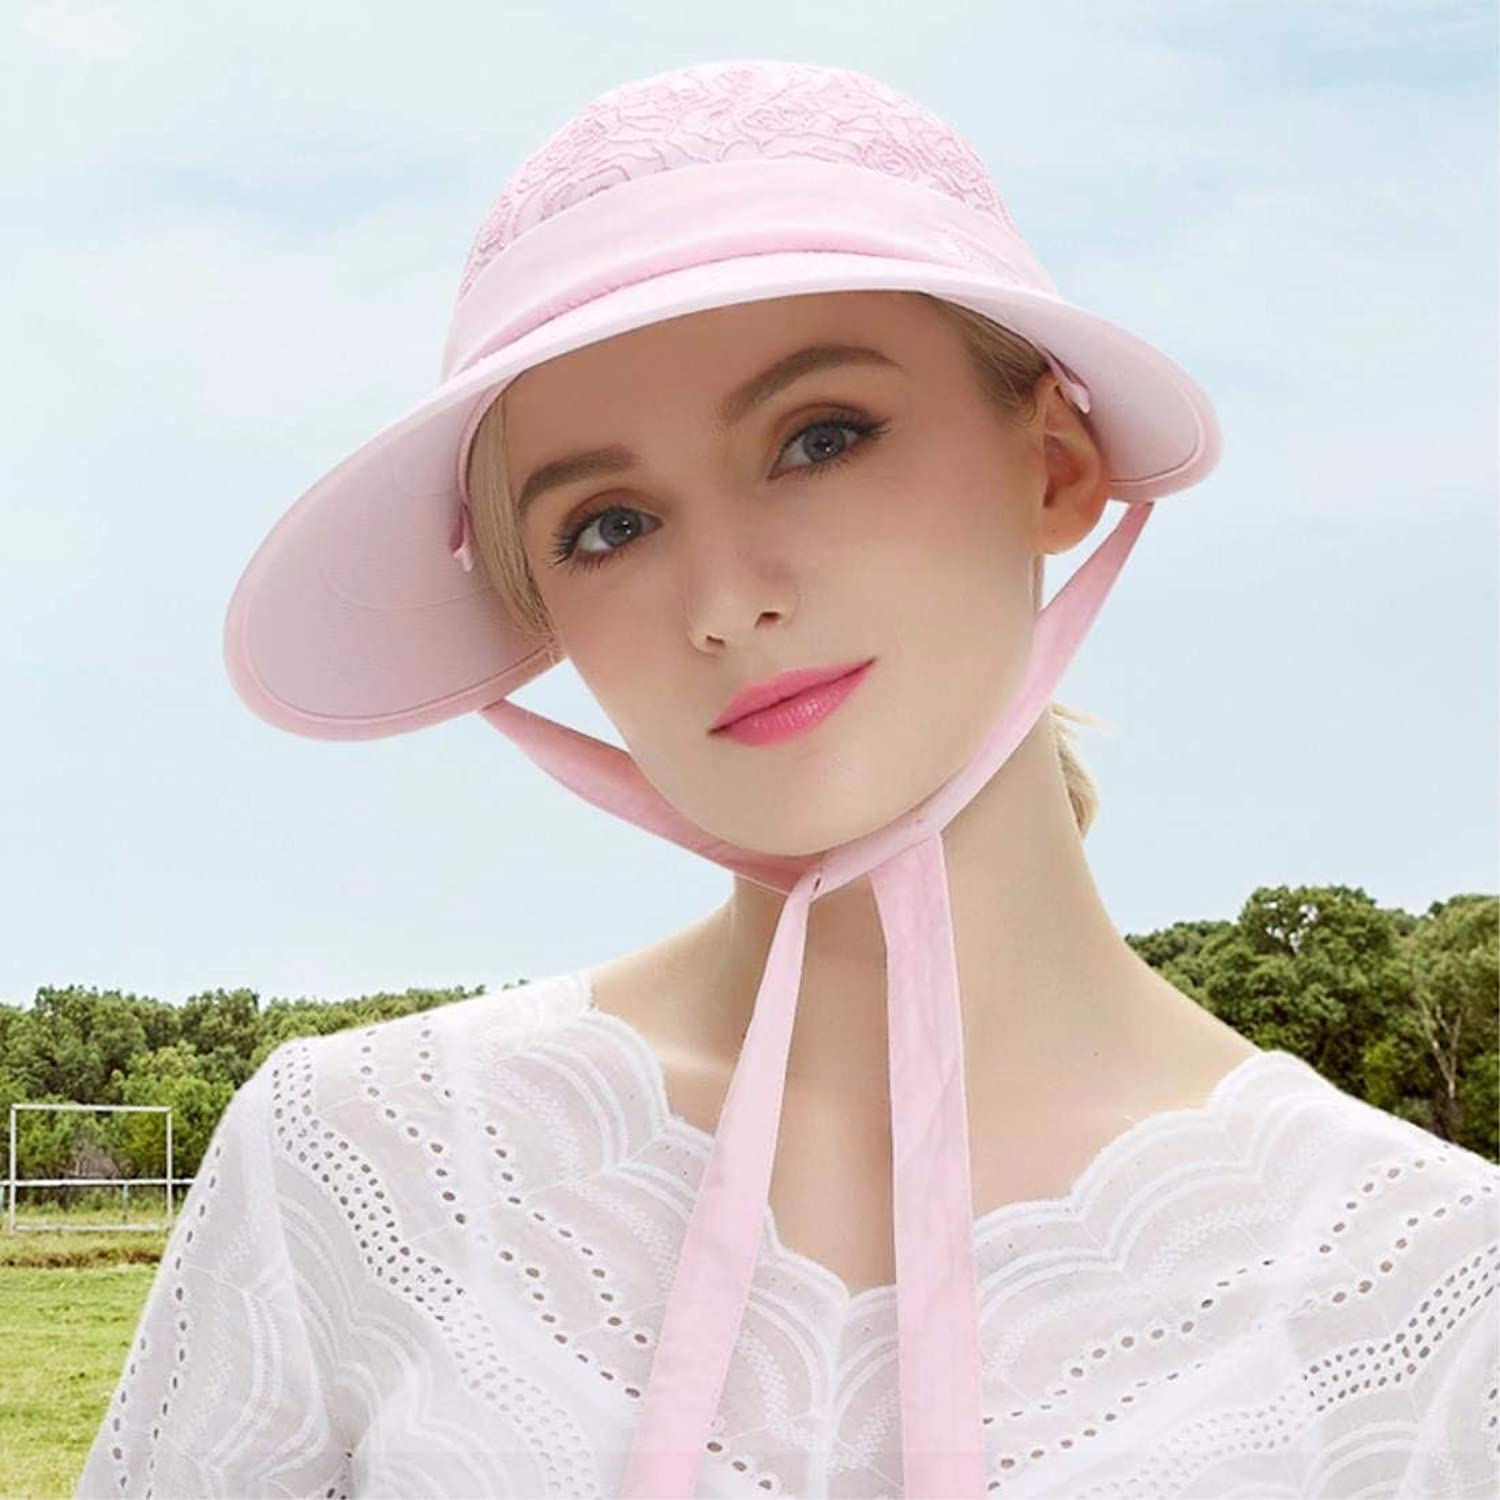 Beach Hat Woman Hat Summer Outdoor Uv Visor Beach Cap Sun Cap Empty Top Hat Pink Summer Sun Hat